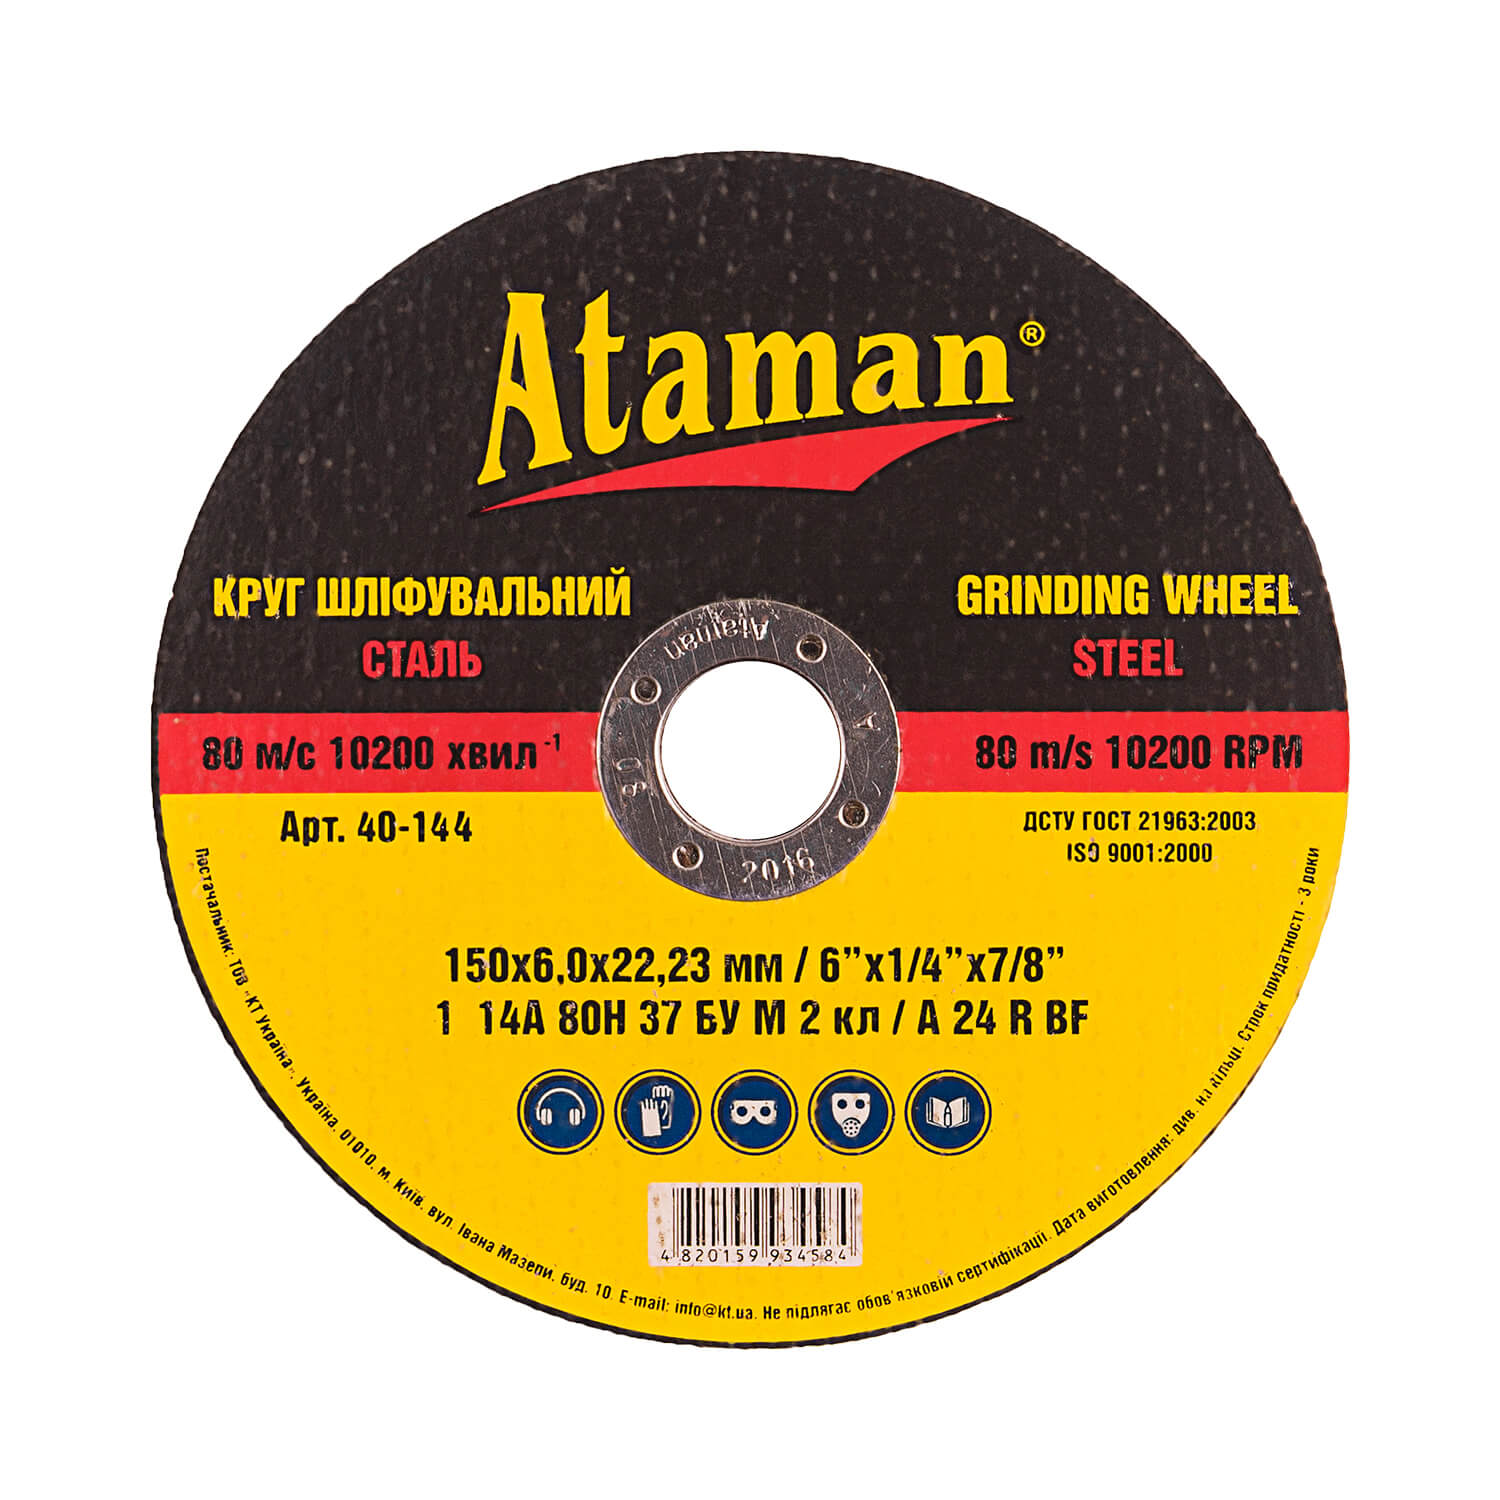 Grinding wheels on metal Ataman 1 14А 150х6.0х22.2323